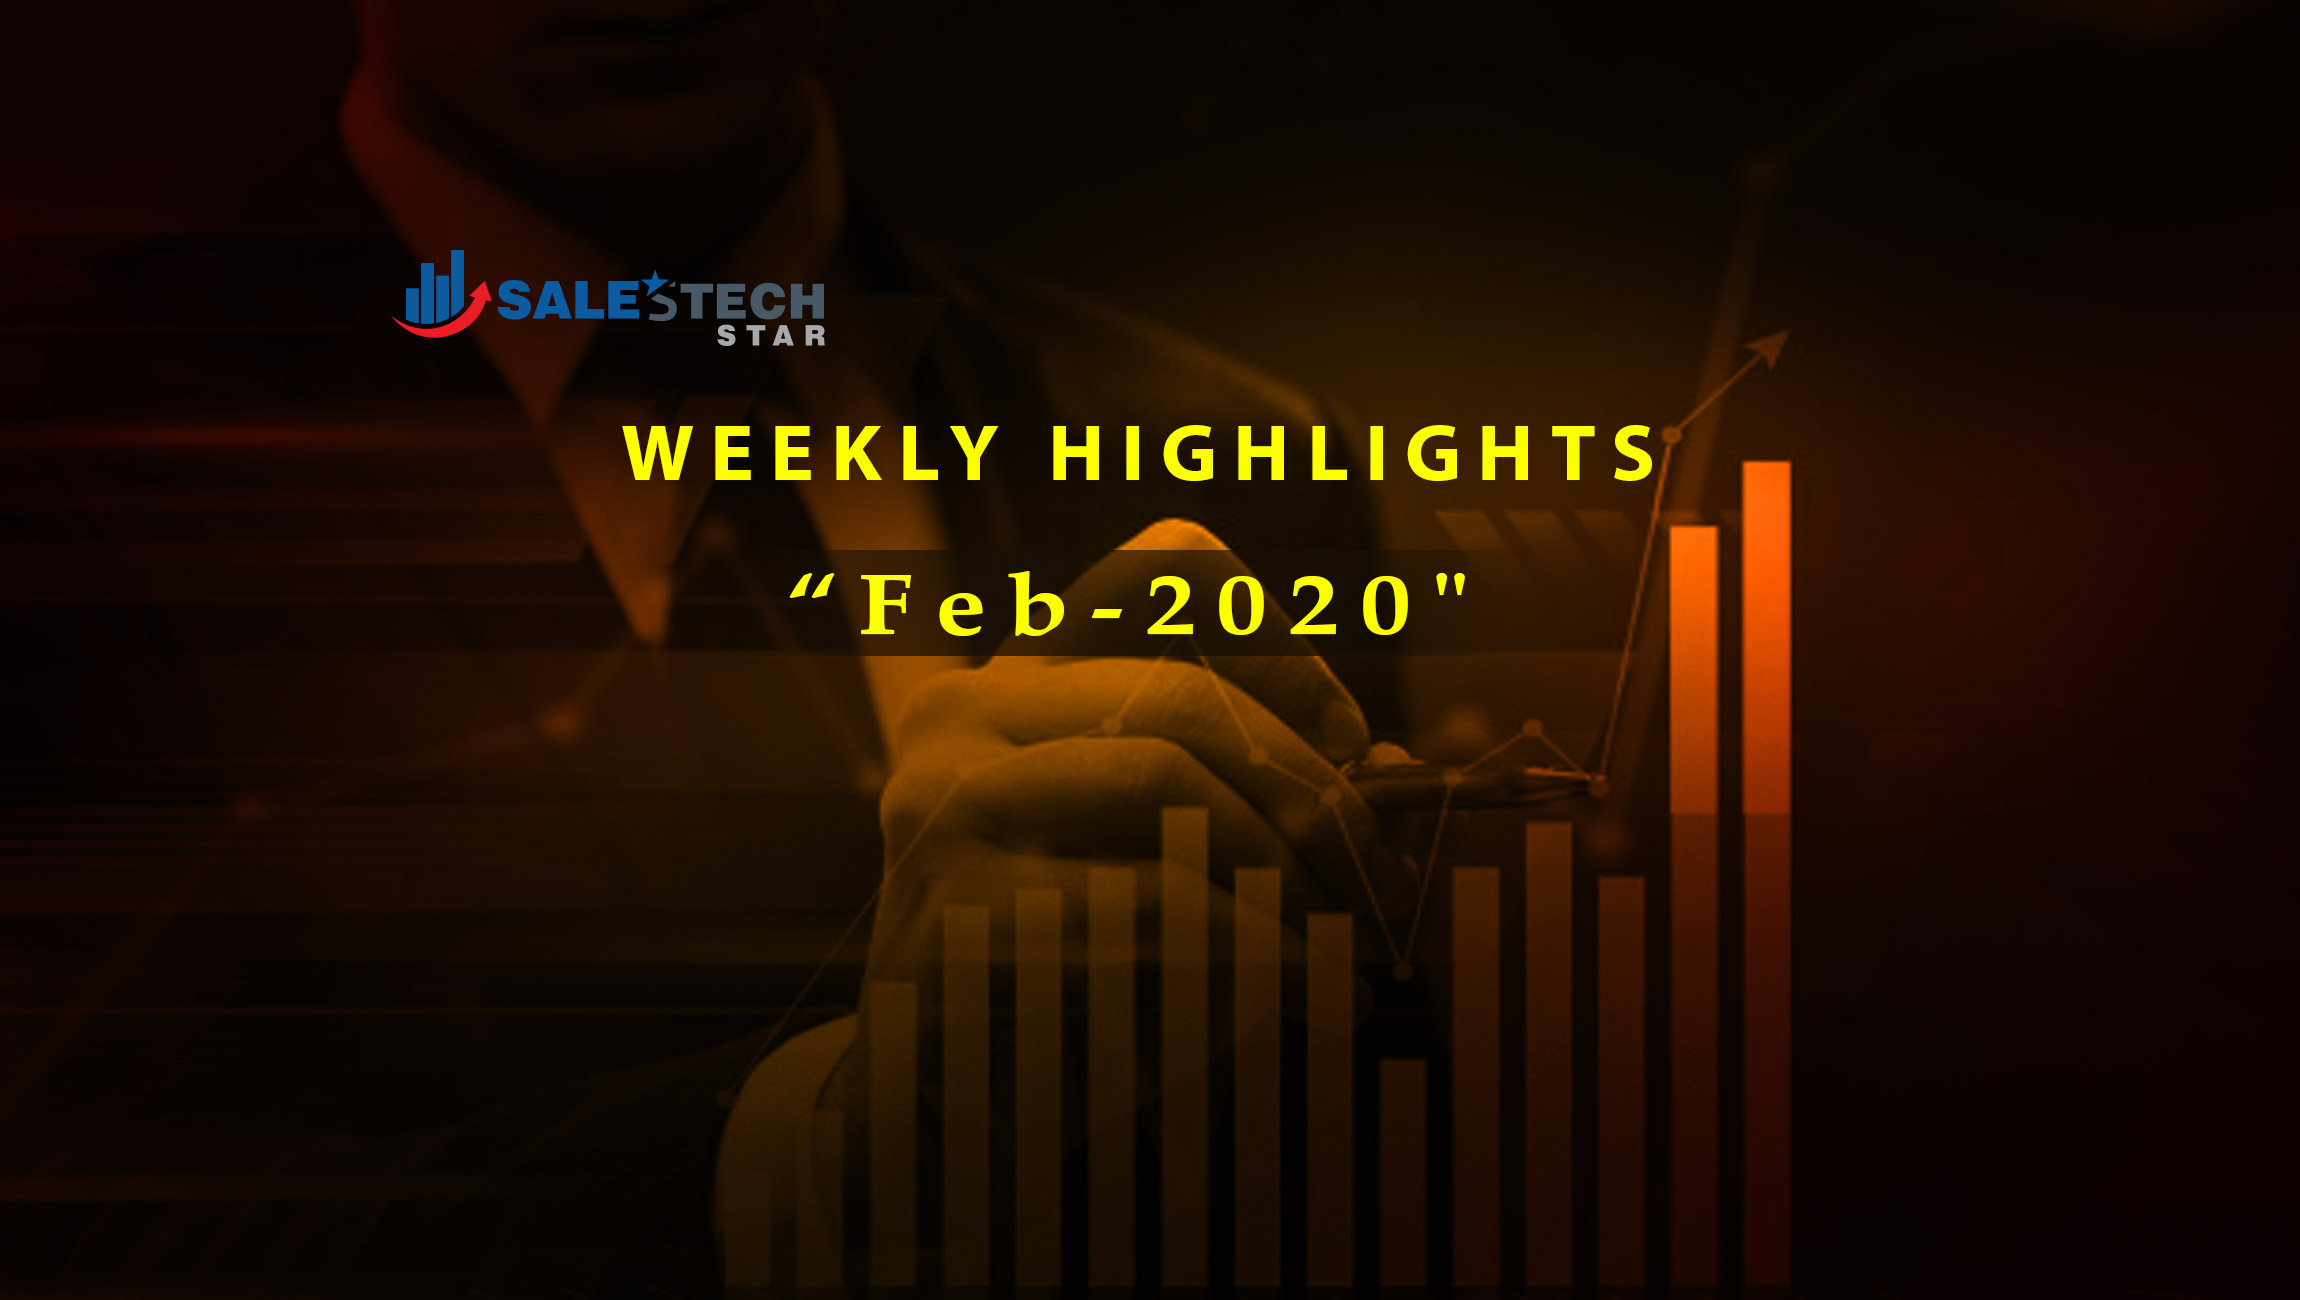 Top SalesTech News Of The Week – 10th February 2020: Featuring News From Salesforce, Qualtrics, Amdocs, and More